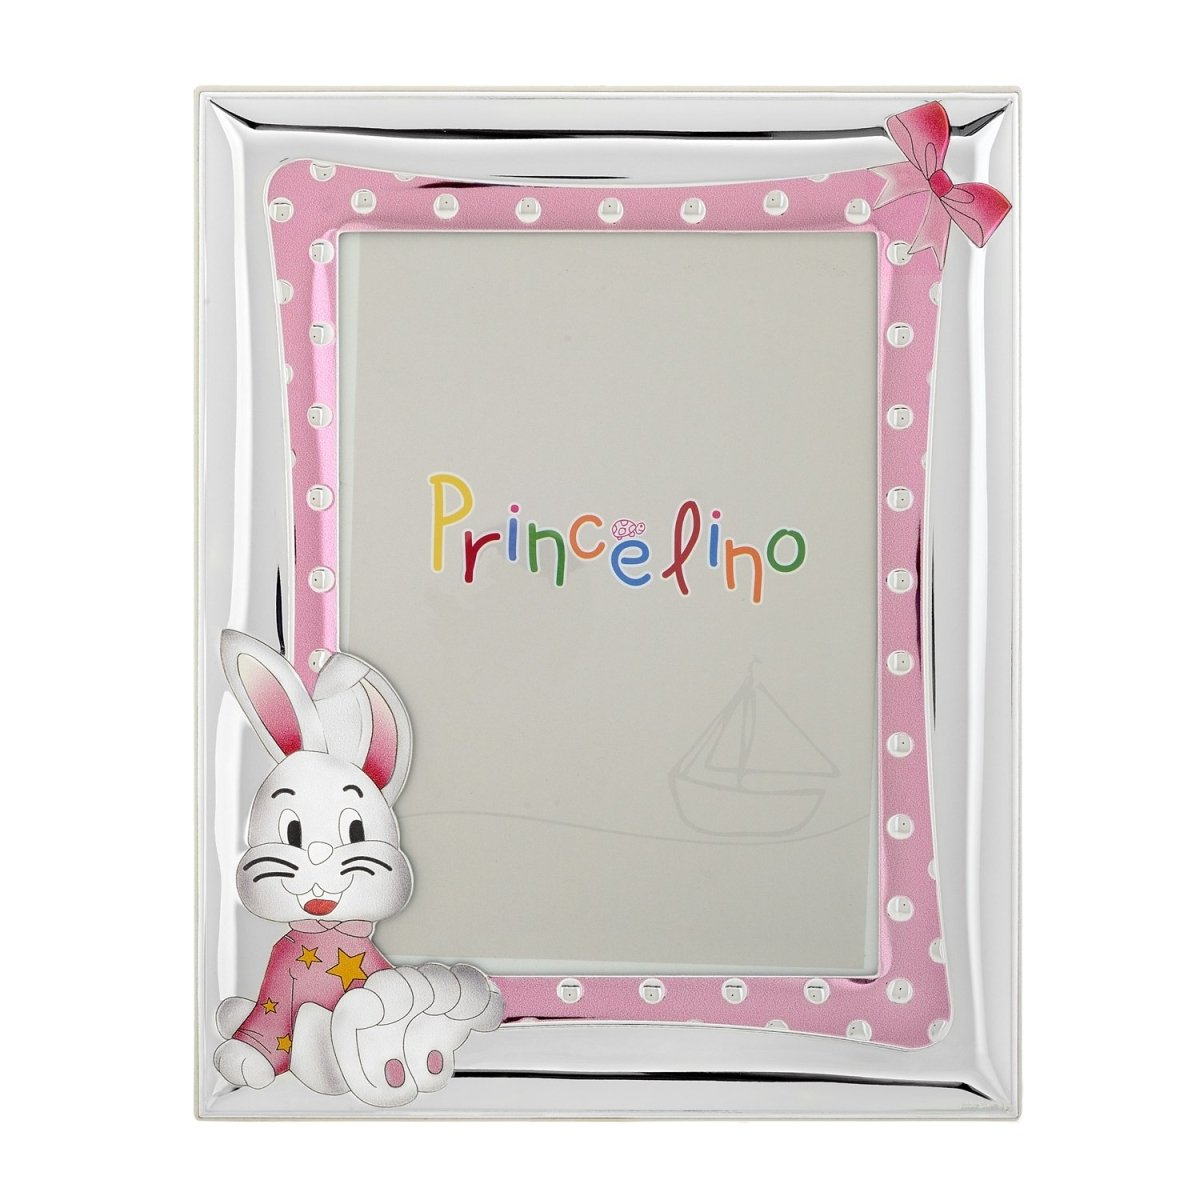 Children's Silver Frame MA-271D-R 9cm x 13cm - Goldy Jewelry Store